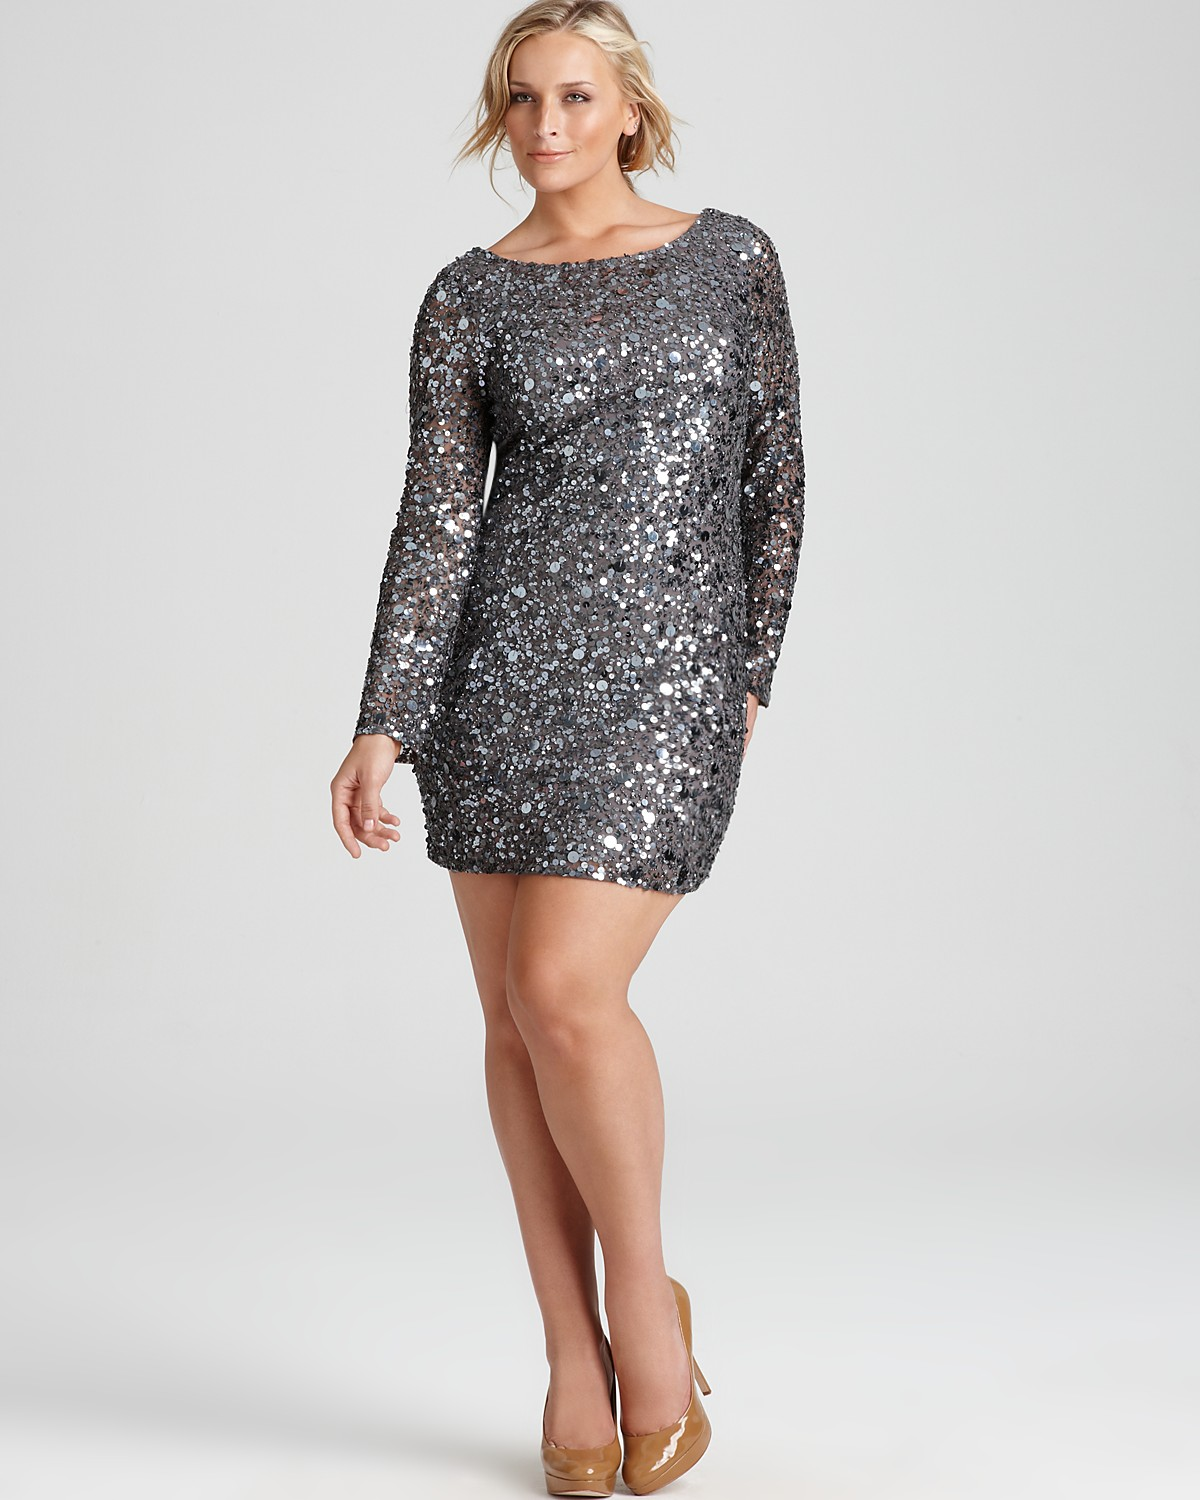 ideal choice of plus size sequin dress - 24 dressi